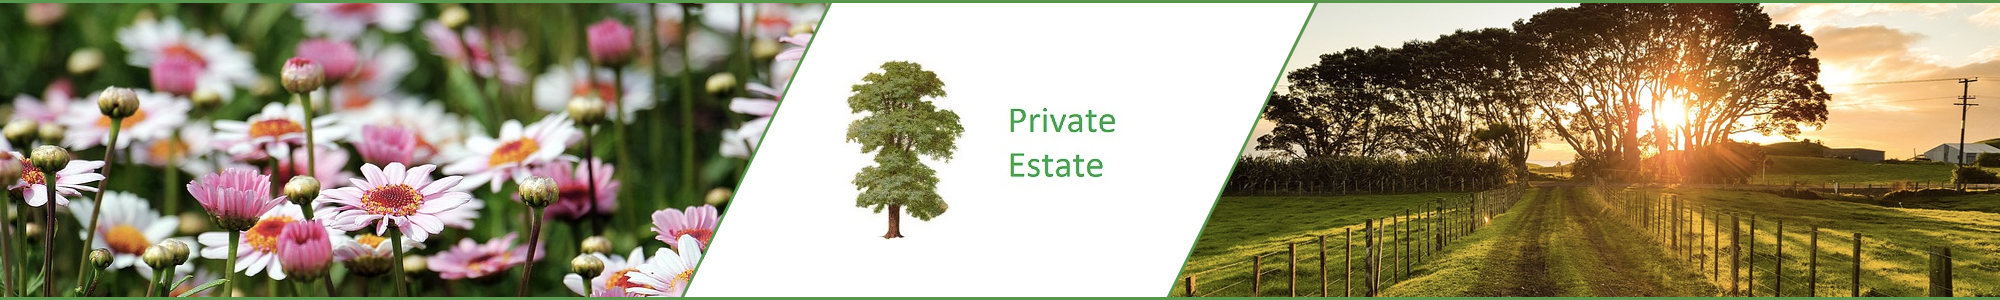 Private Estate - Blakenham Farms